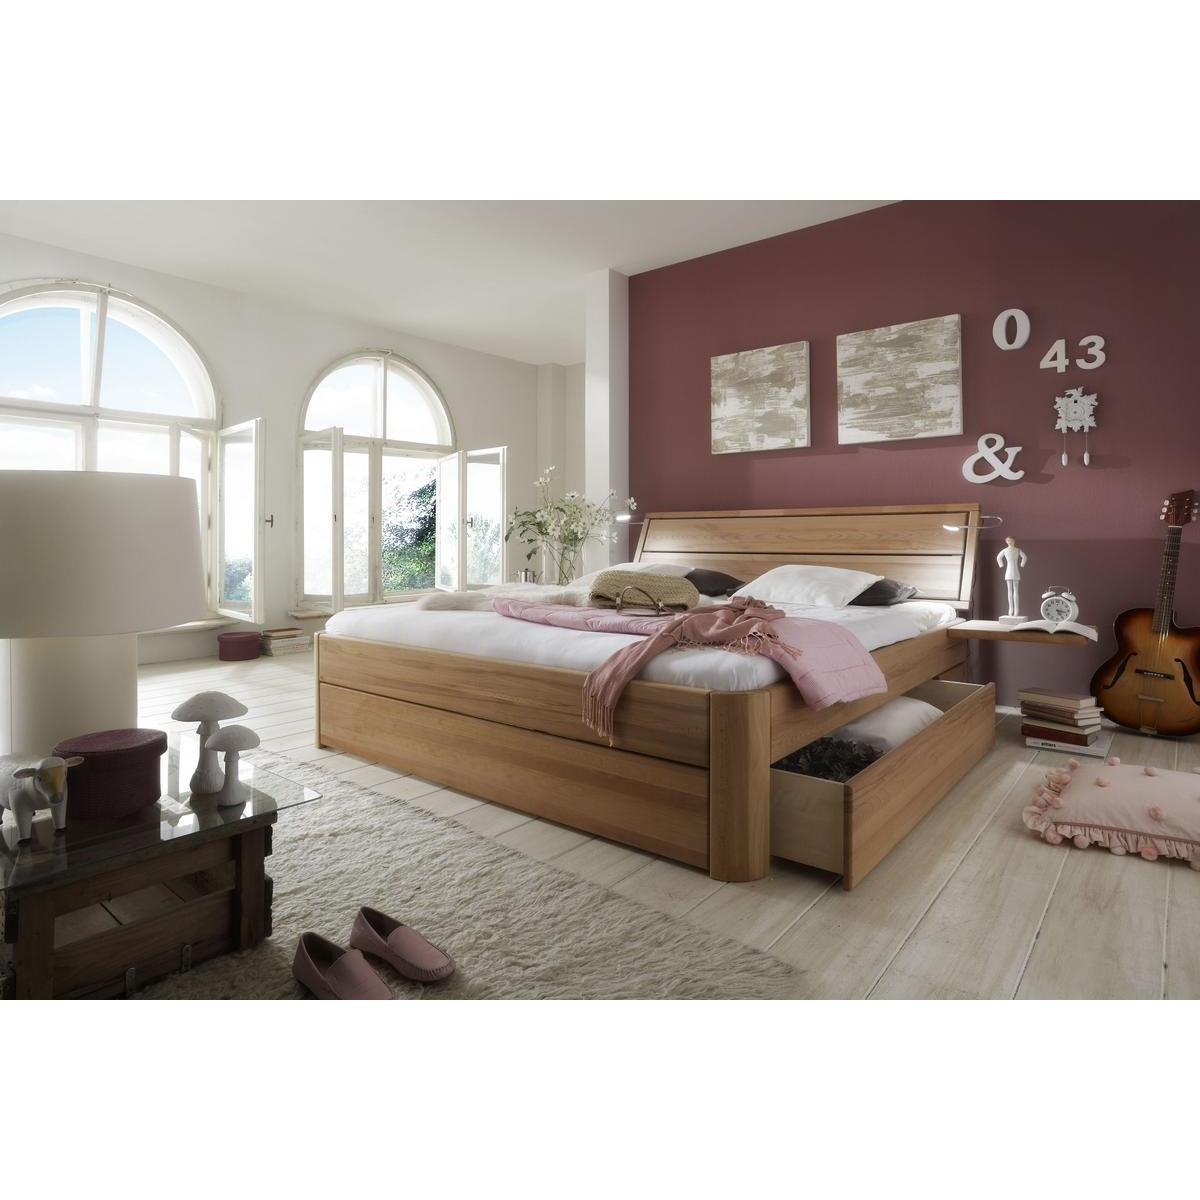 massivholz schubkastenbett 180x200 easy sleep kernbuche massiv ge lt 9418 73 52 87. Black Bedroom Furniture Sets. Home Design Ideas